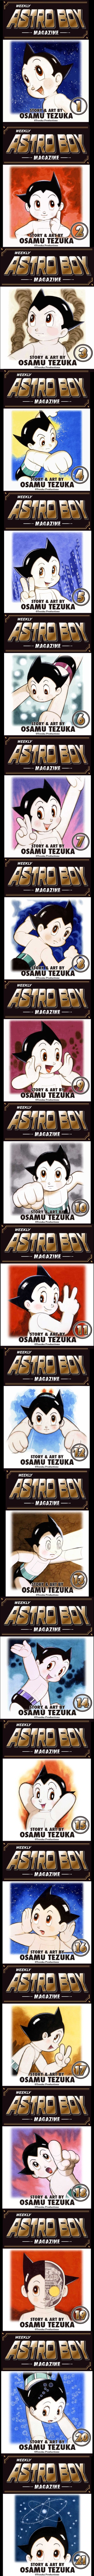 Weekly Astro Boy Magazine Covers 1# - 21# http://www.comicvine.com/weekly-astro-boy-magazine-1-vol-1/4000-441788/